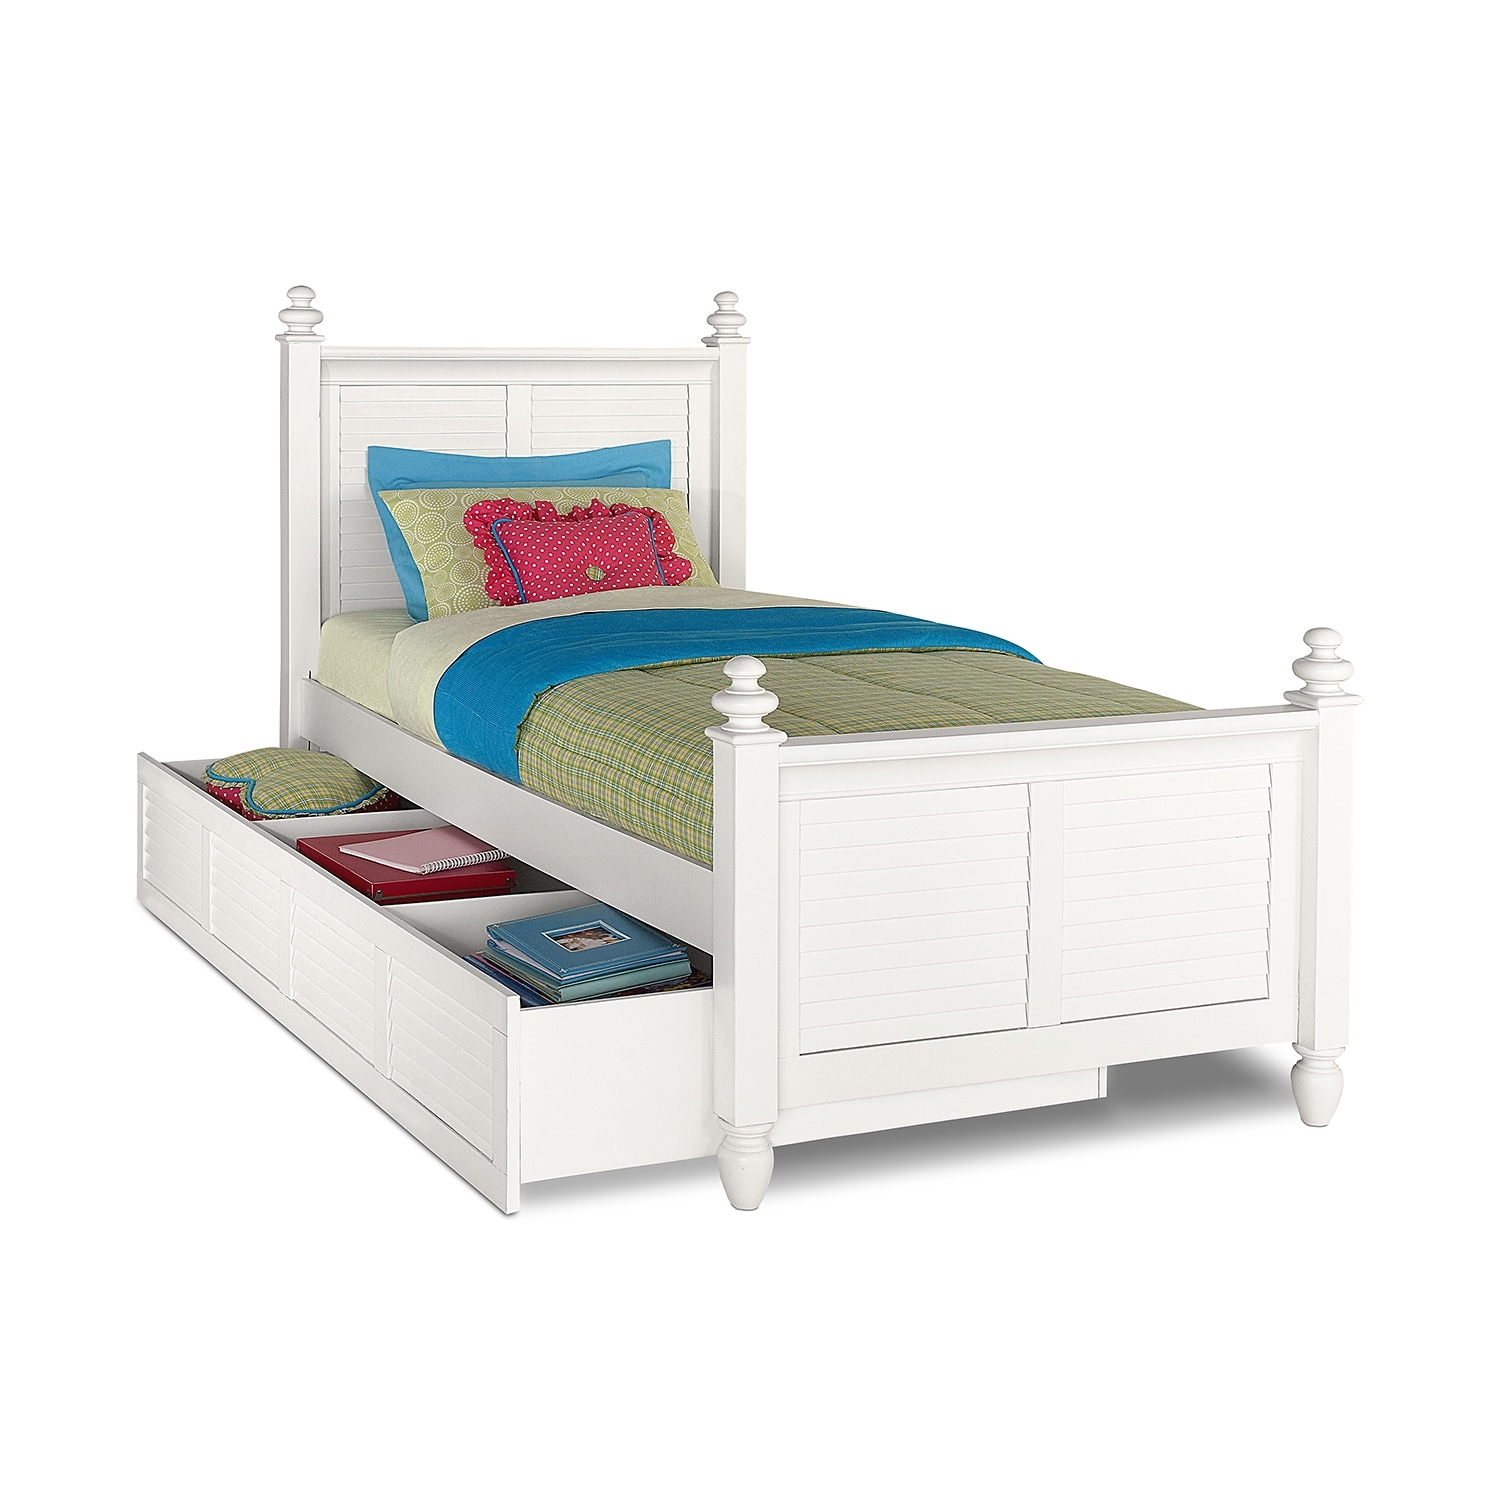 white twin bed. Click To Change Image. White Twin Bed